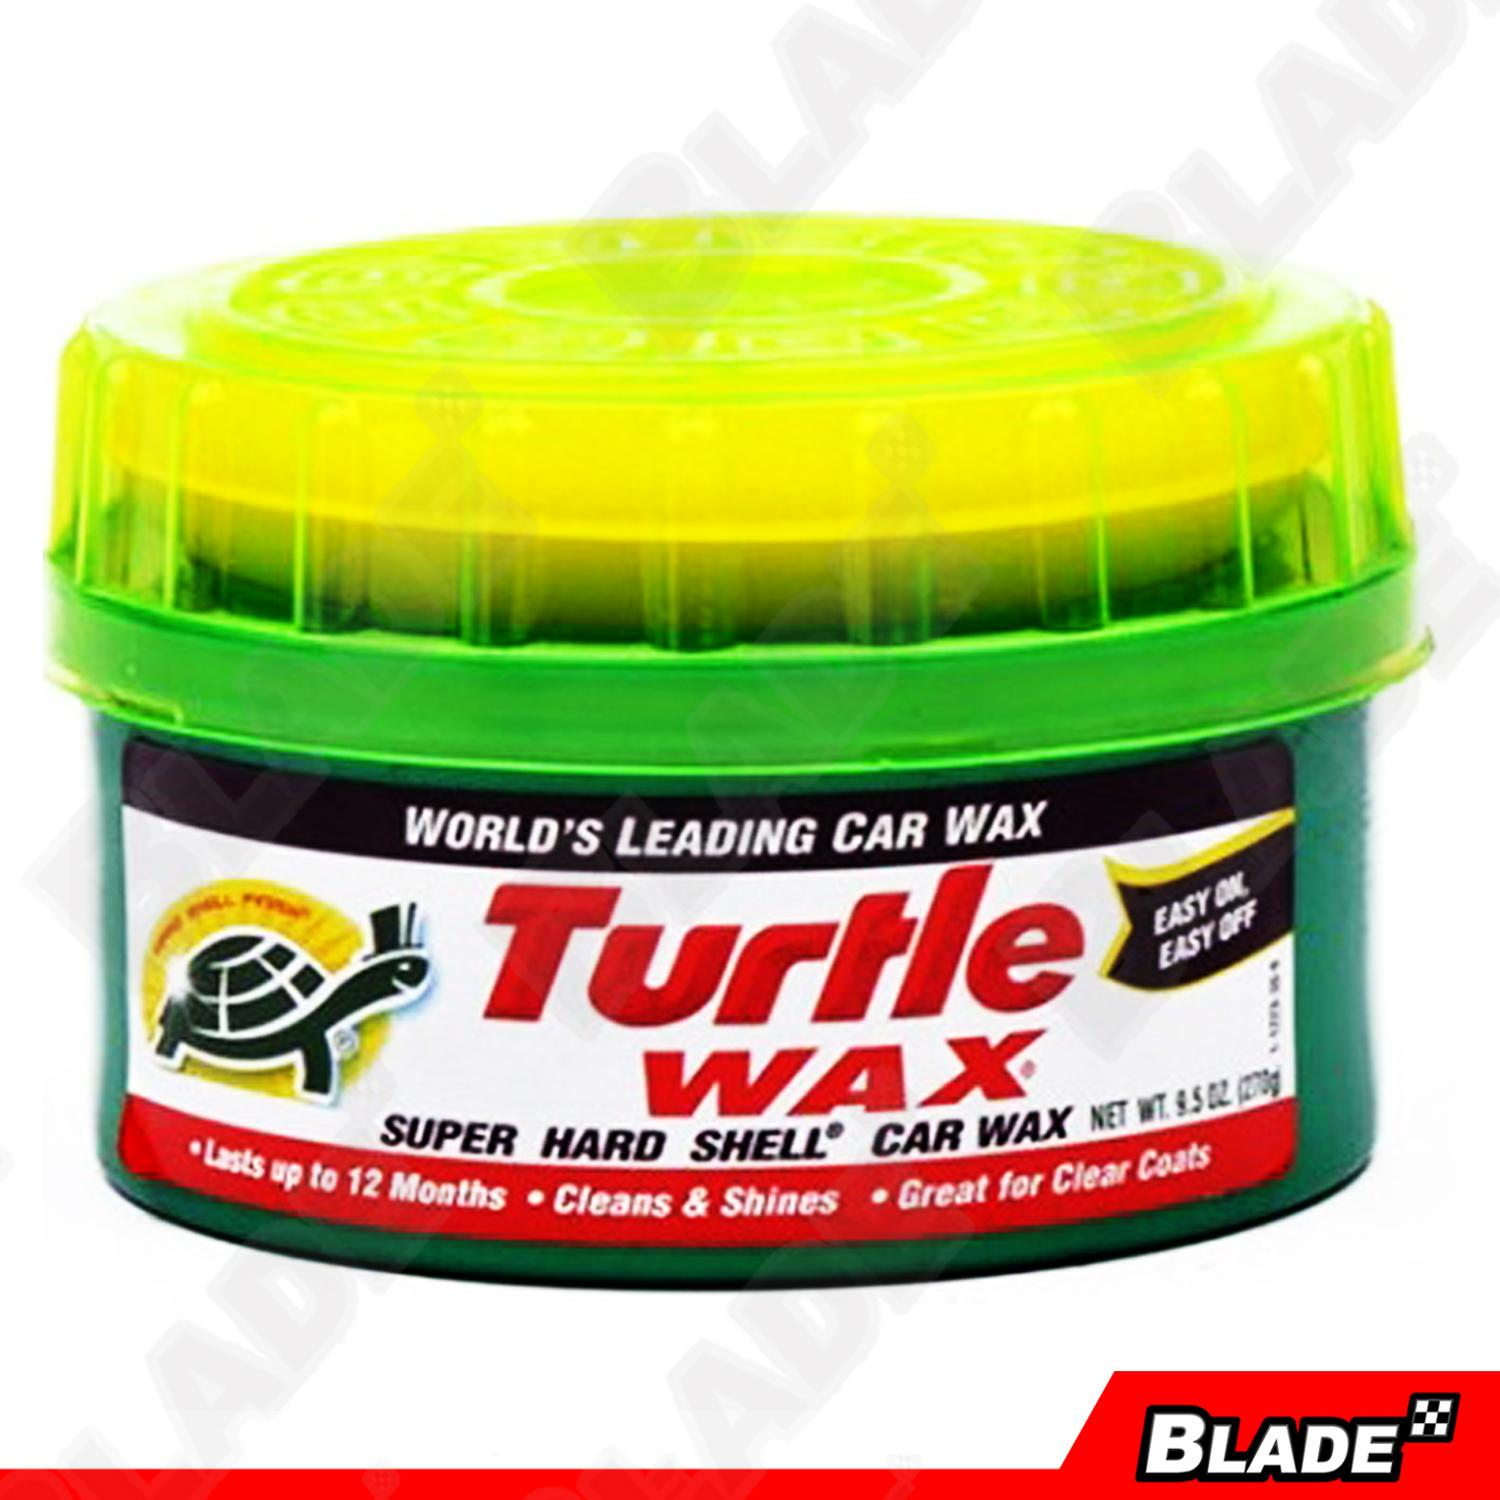 Sell Turtle Wax Fg6906 Cheapest Best Quality Ph Store Turtlewax T 319 Jet Back Spray Detailer Super Hard Shell Paste 270gphp369 Php 369